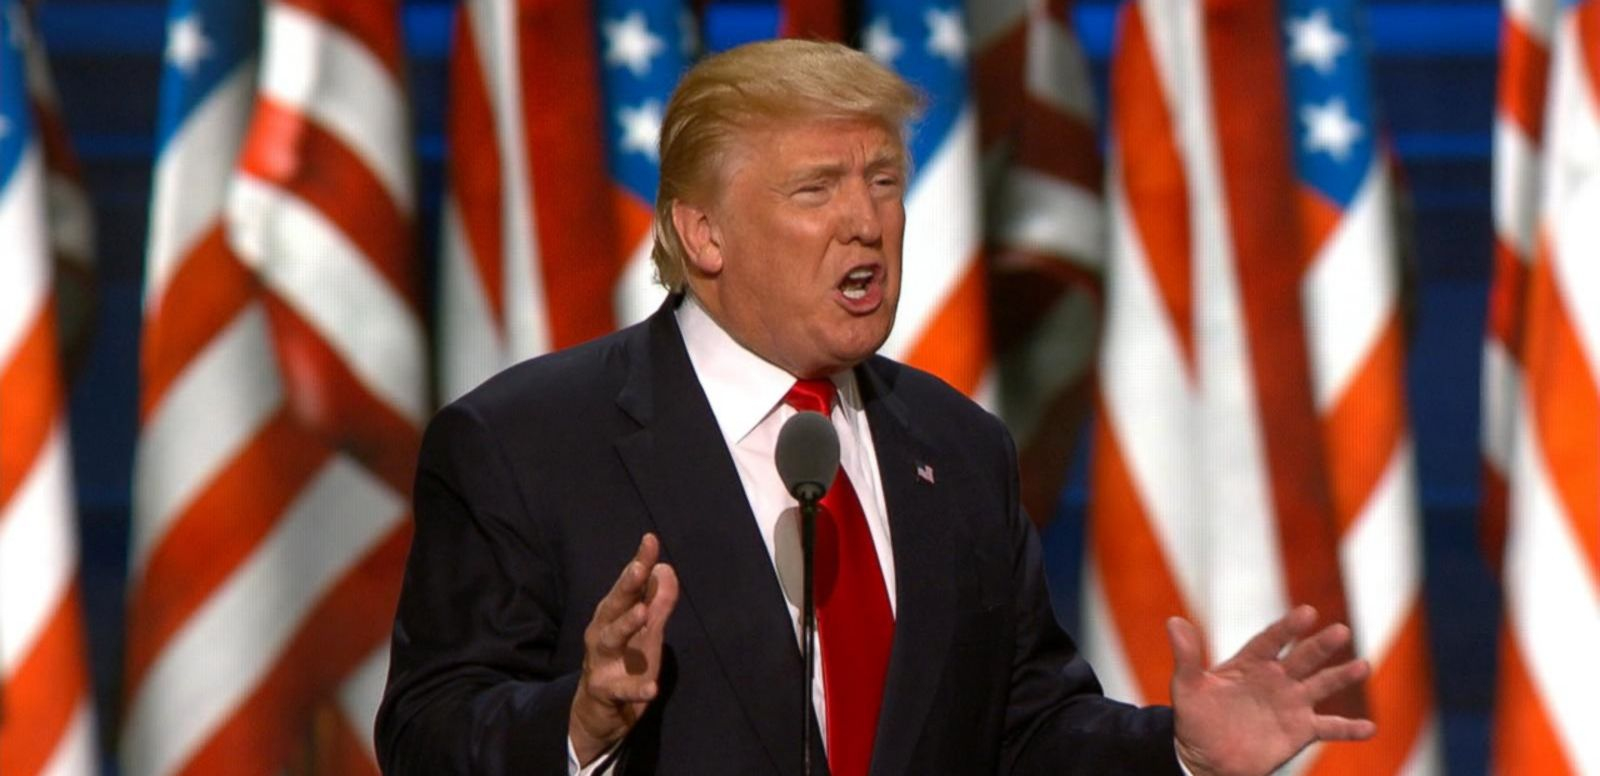 VIDEO: Trump Brags About the Length of his RNC Speech